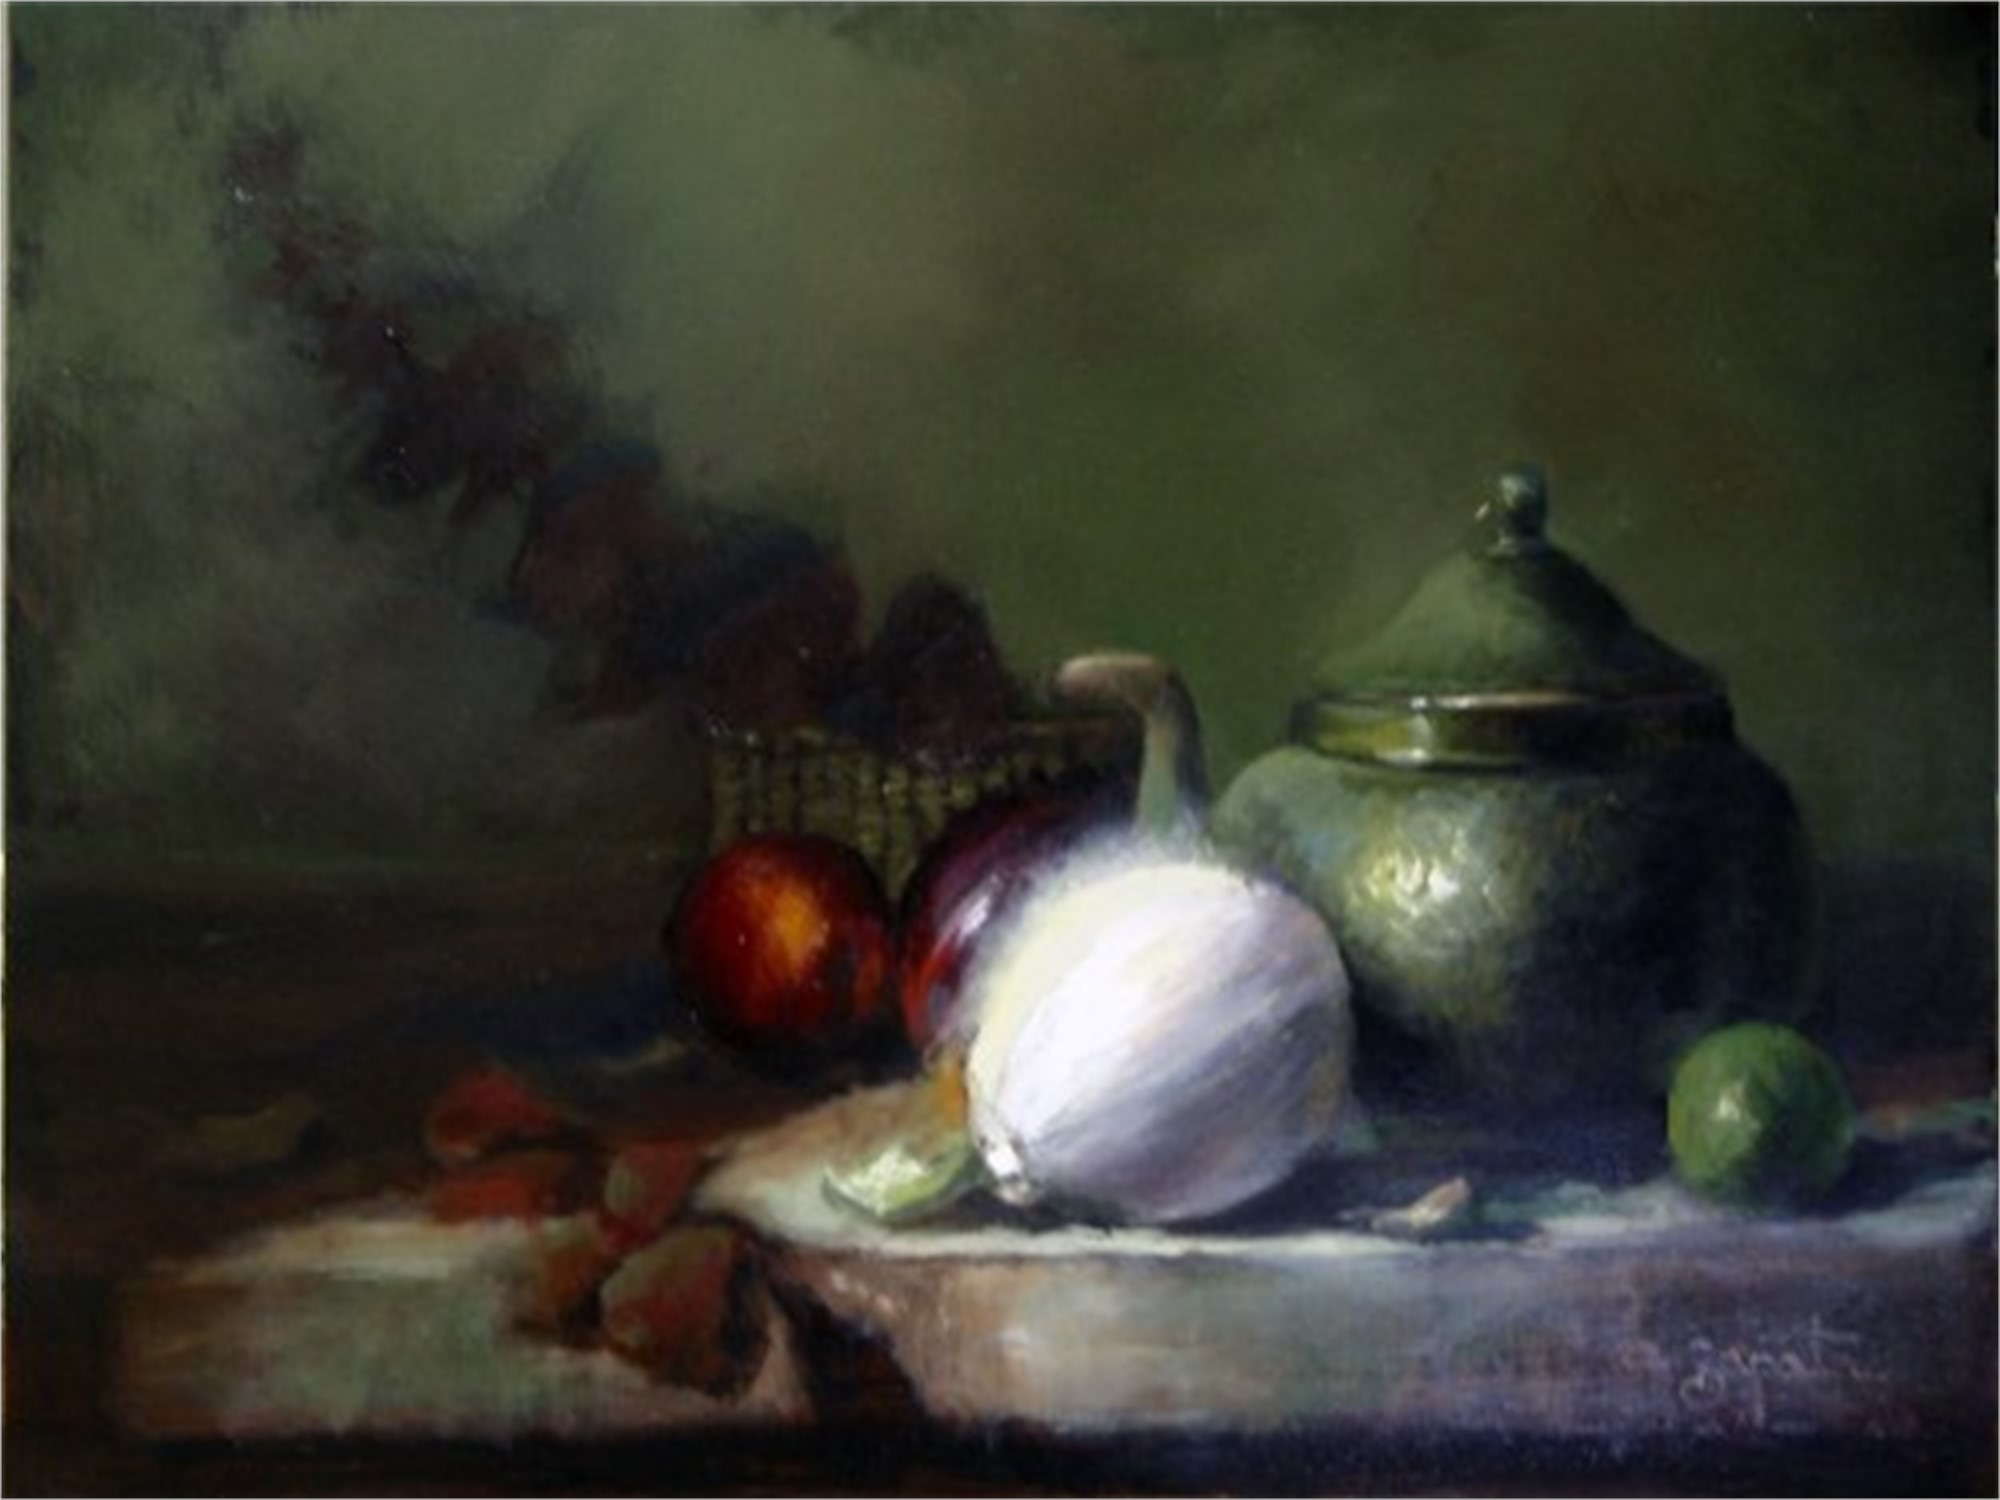 STIL LIFE WITH WHITE ONION by ZAPATA